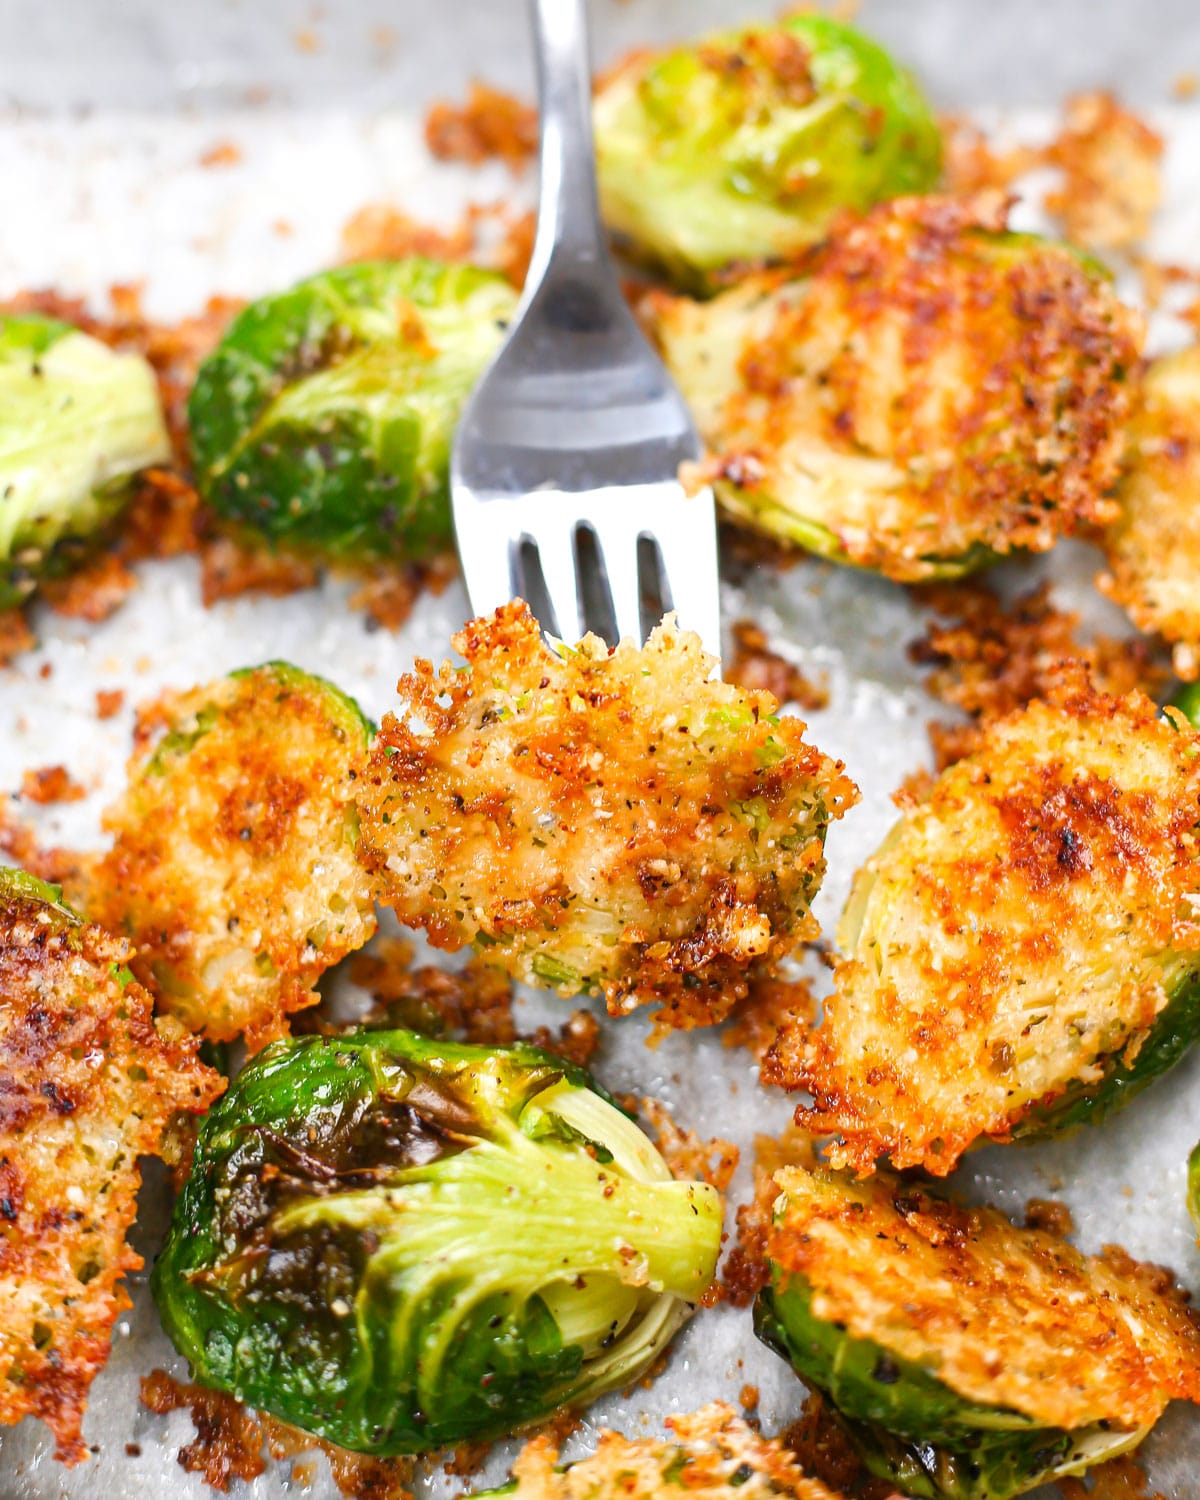 a fork lifting a roasted brussels sprout to show the crispy parmesan baked onto the bottom